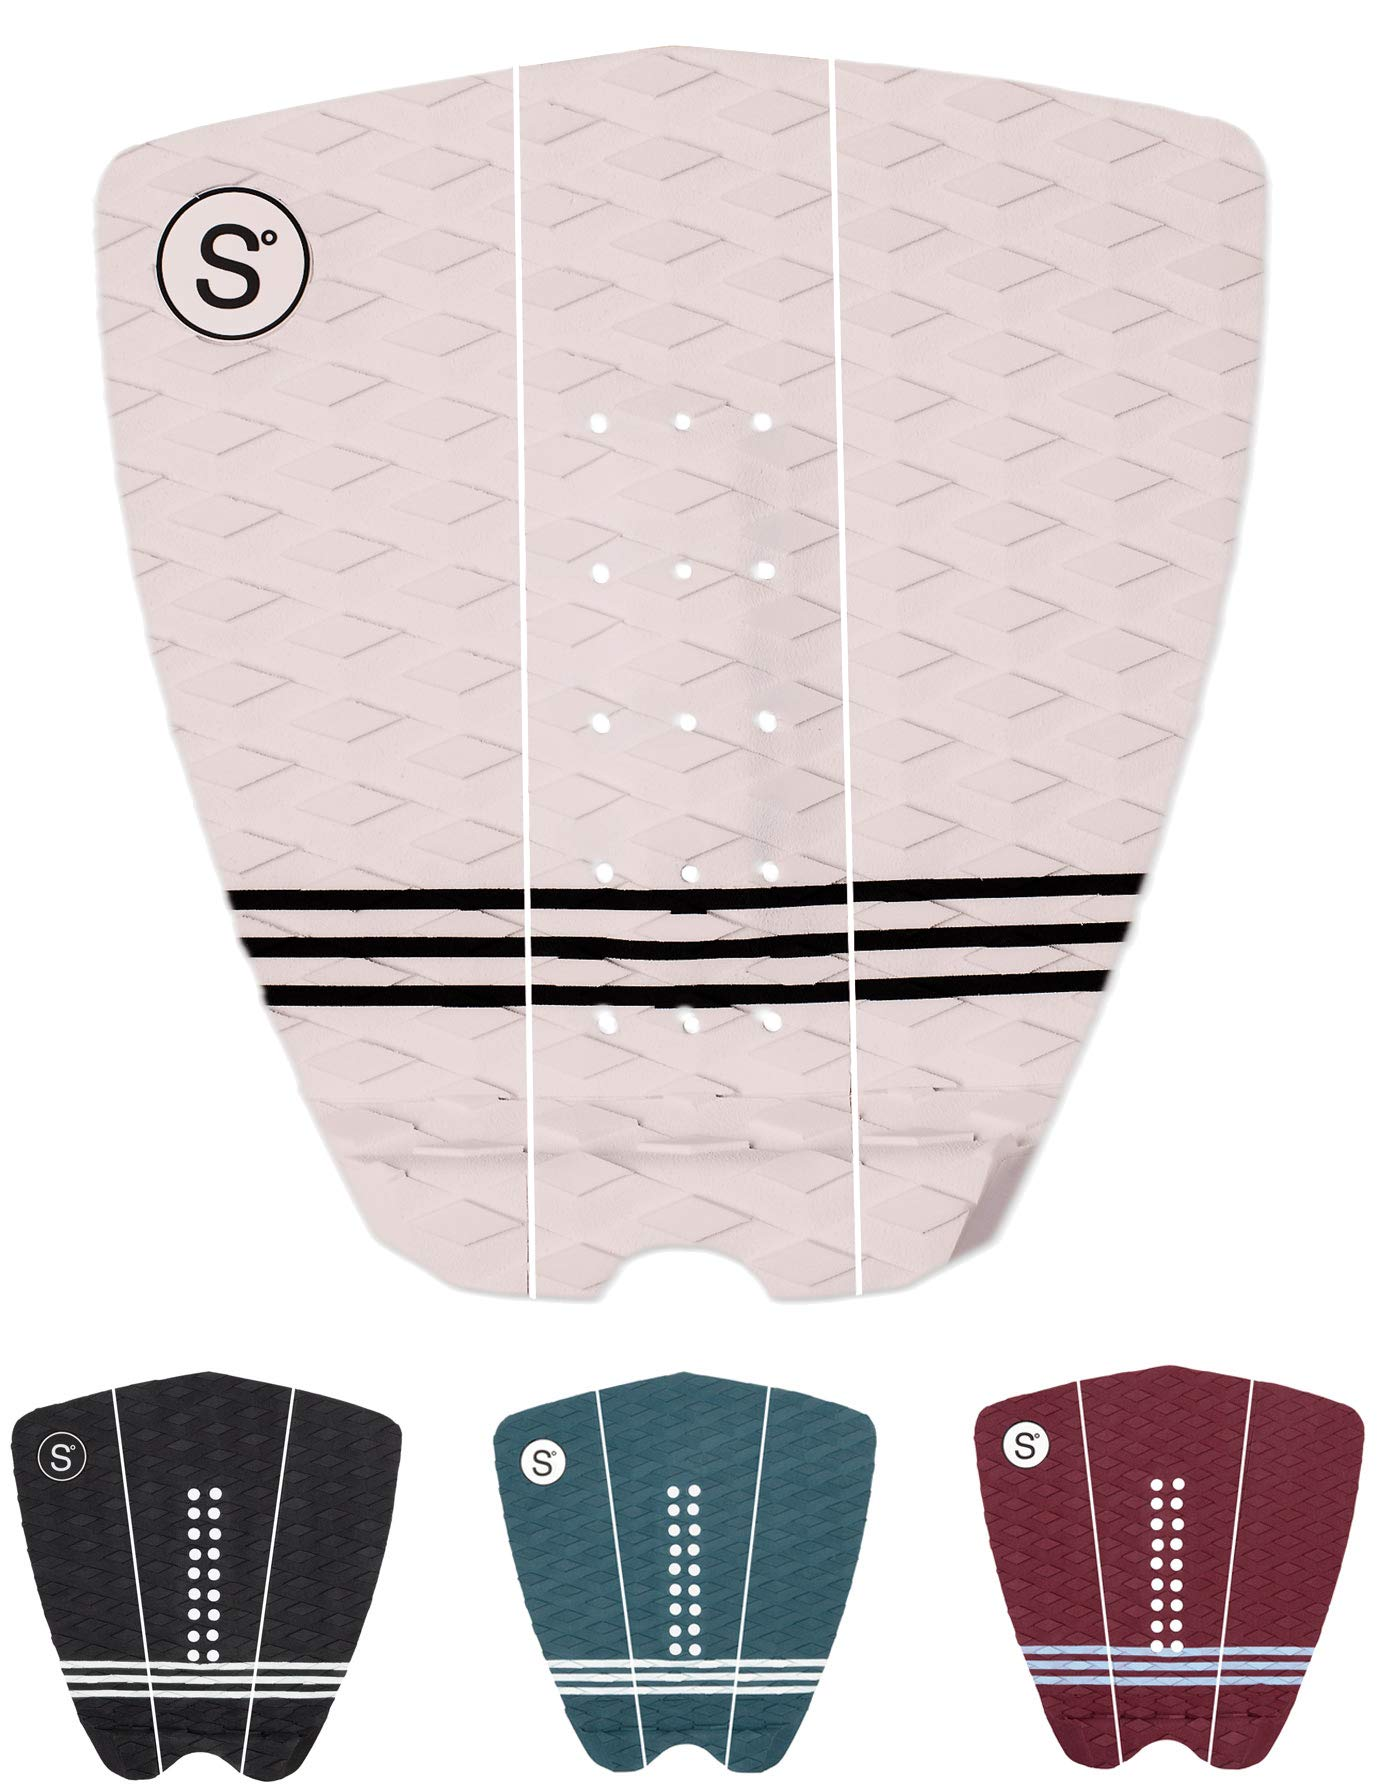 Sympl Surfboard Traction Pad • 3 Pieces • Maximum Grip, 3M Adhesive for Surfboard, Skimboard, Longboard • [Choose Color] (White) by Sympl Supply Co.